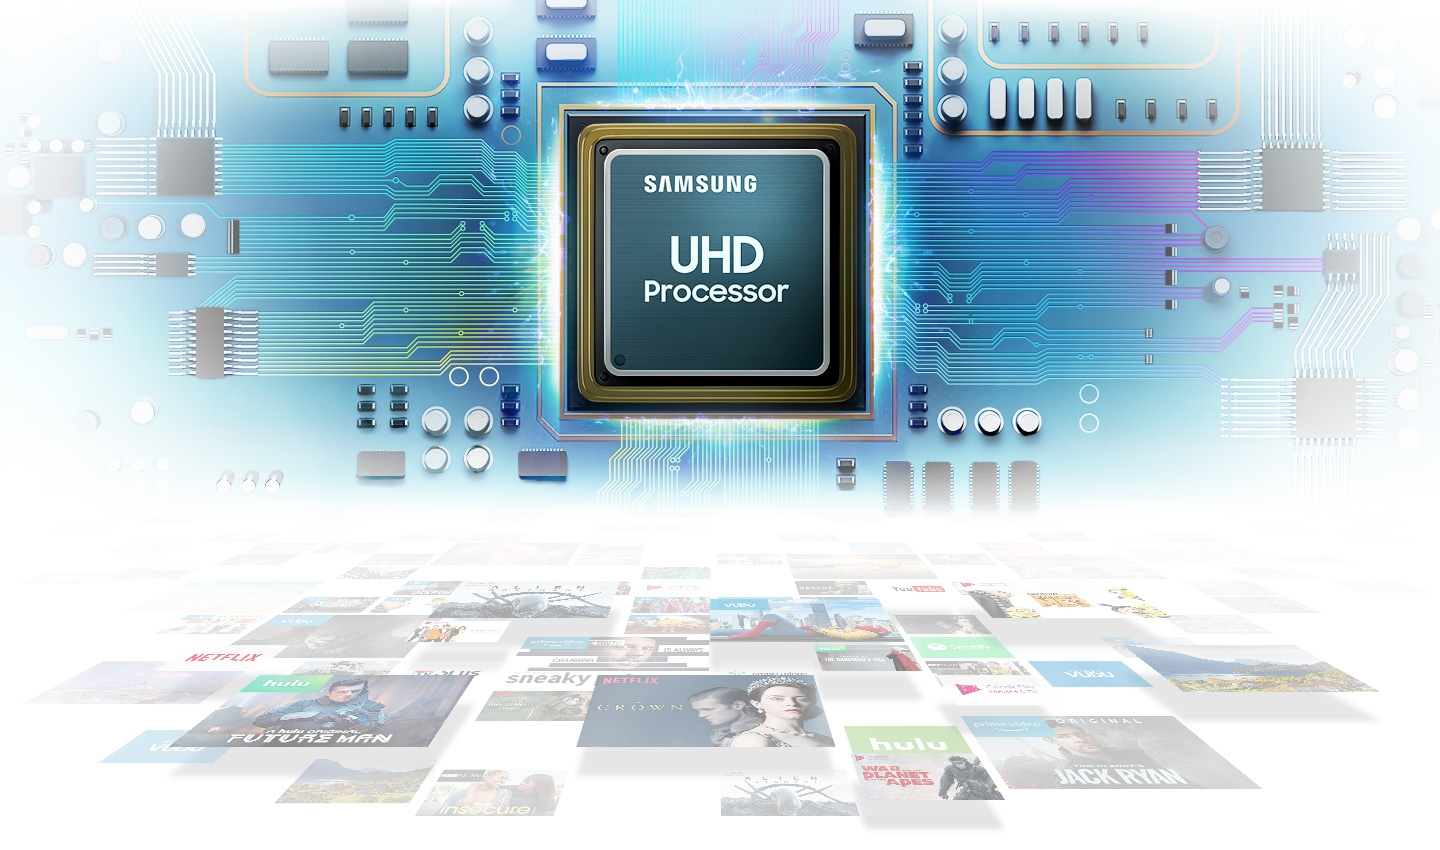 Телевизор SAMSUNG UE50RU7472 (2019г) 4K UHD 3840 x 2160, SMART TV, PQI (Picture Quality Index) 2000, HDR 10+, DVB-T2CS2 - фото UHD Processor,powerful picture quality